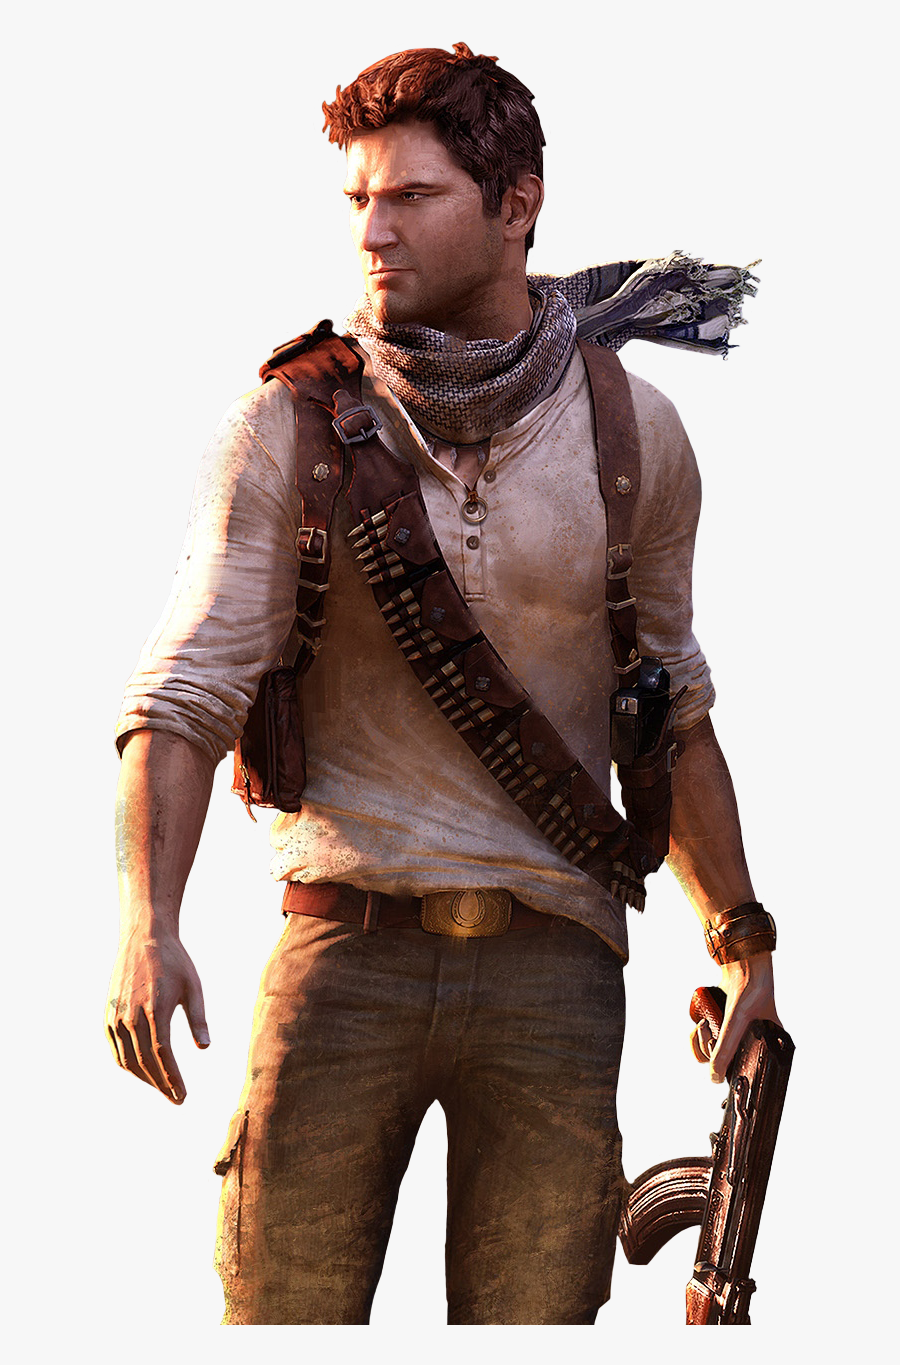 Download Png Image - Uncharted Png, Transparent Clipart